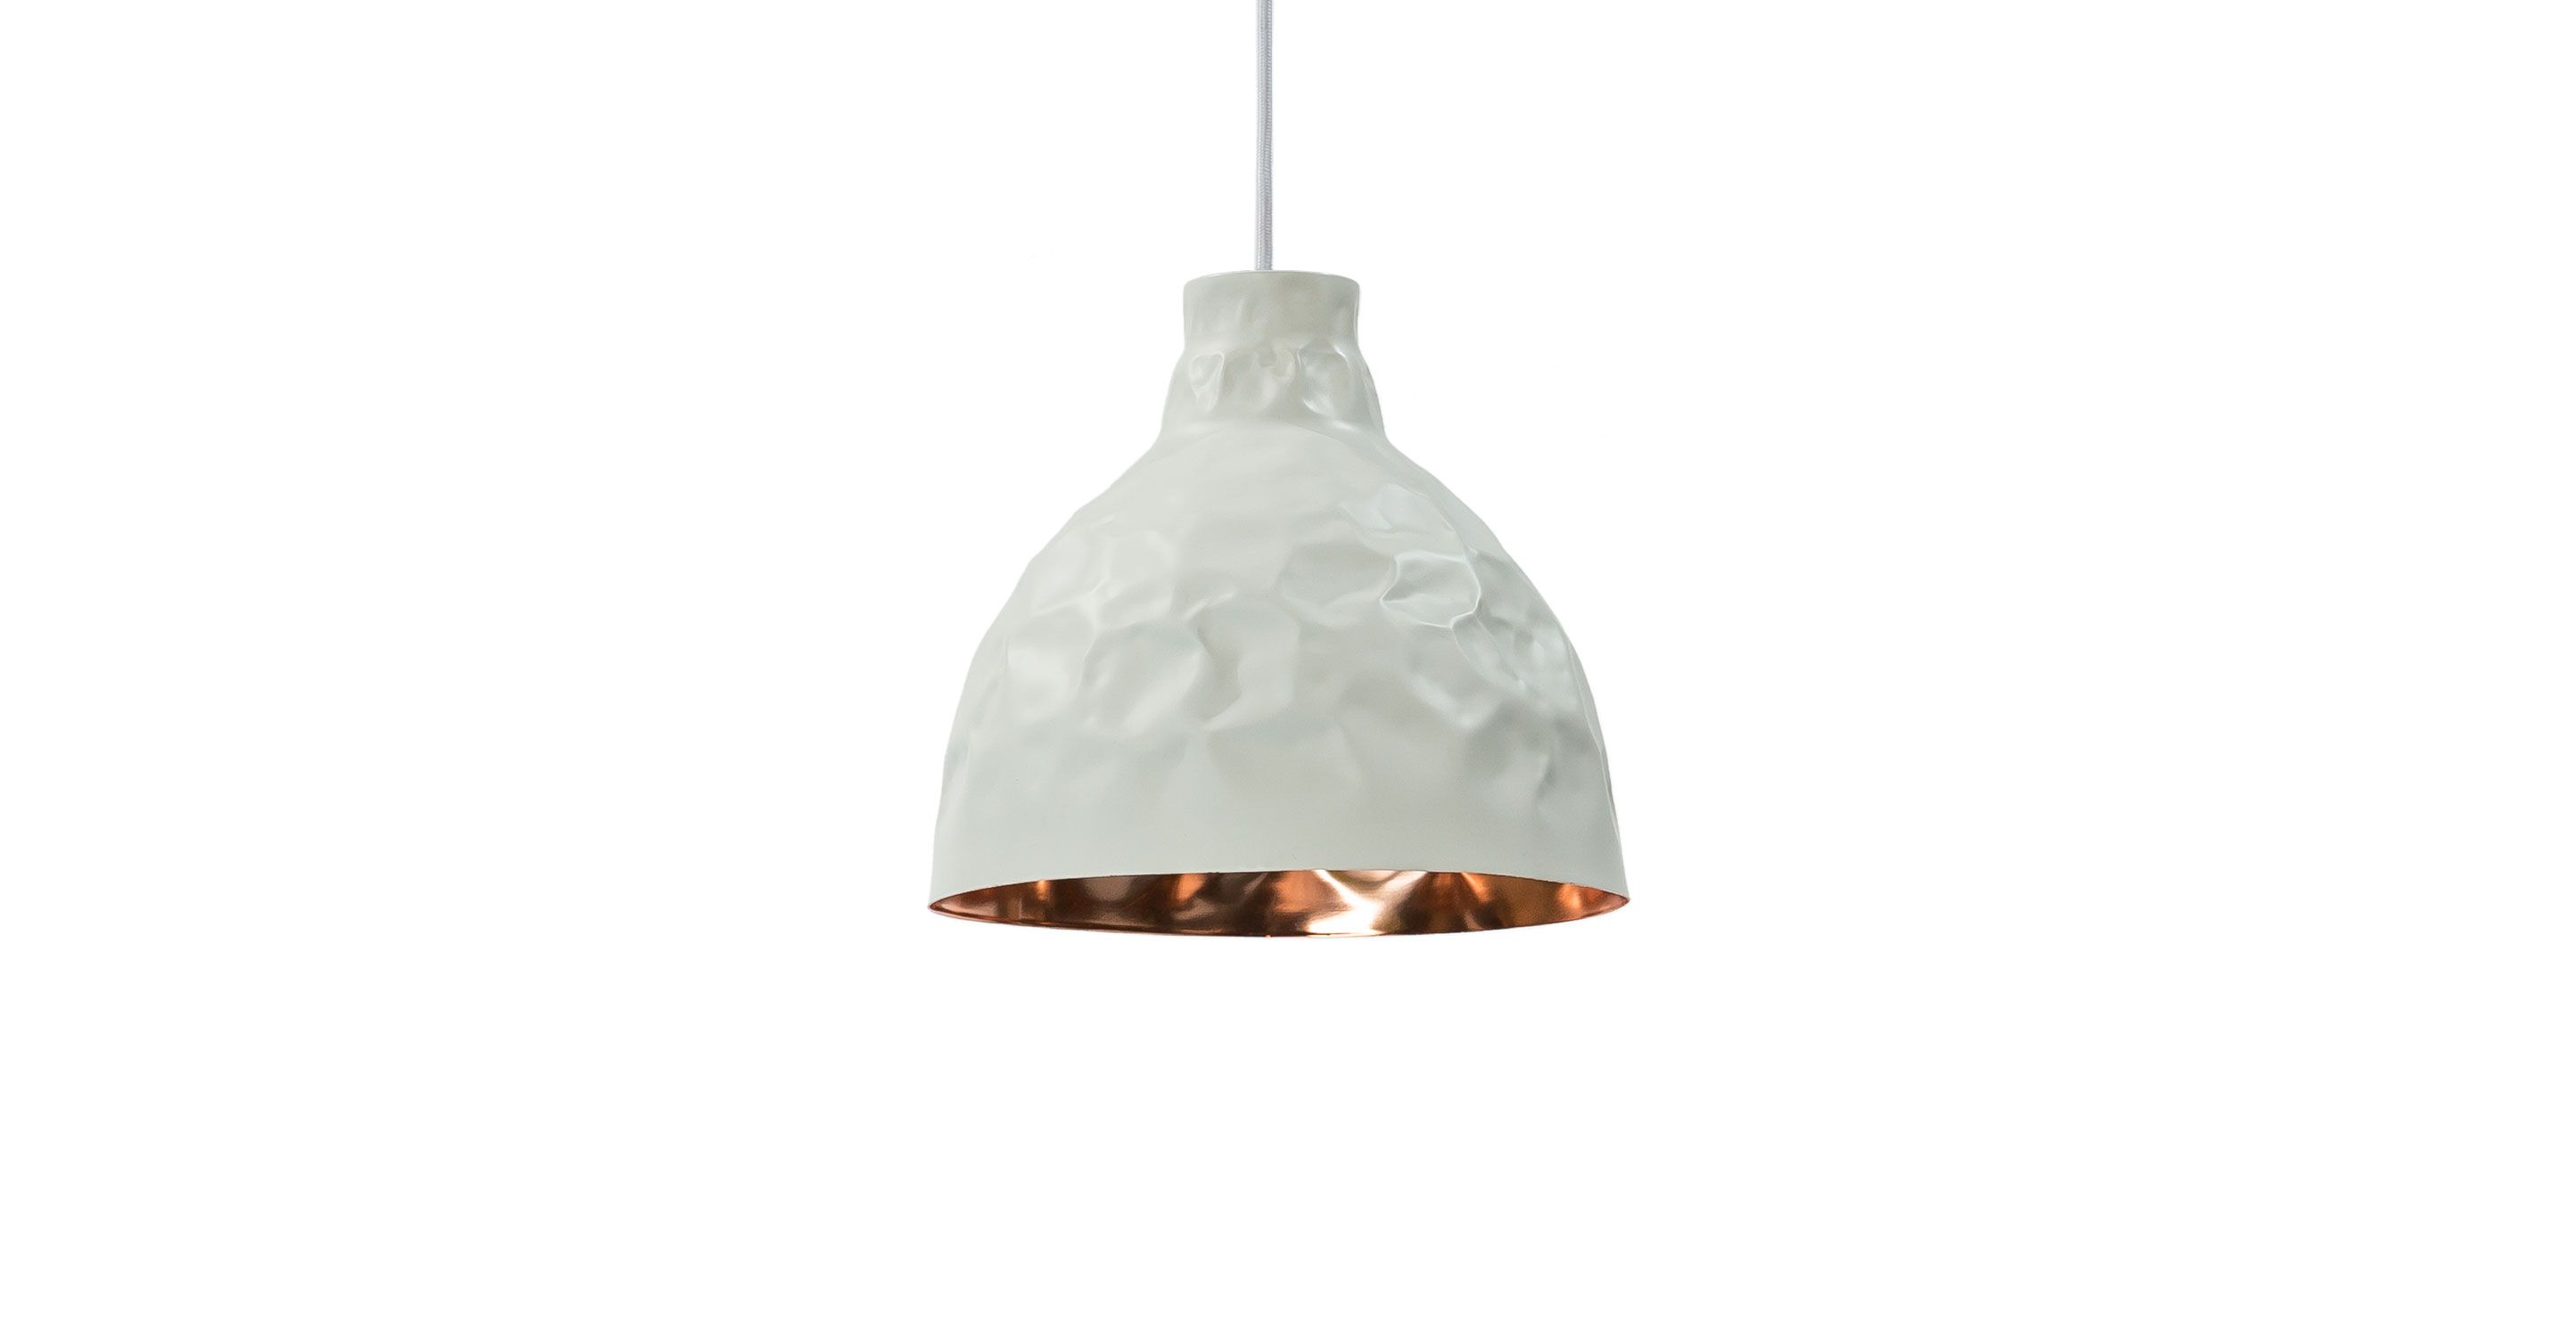 crumple white pendant lamp lighting. Delighful Crumple Crumple White Pendant Lamp  Lighting Article  Modern MidCentury And  Scandinavian Furniture With Pinterest